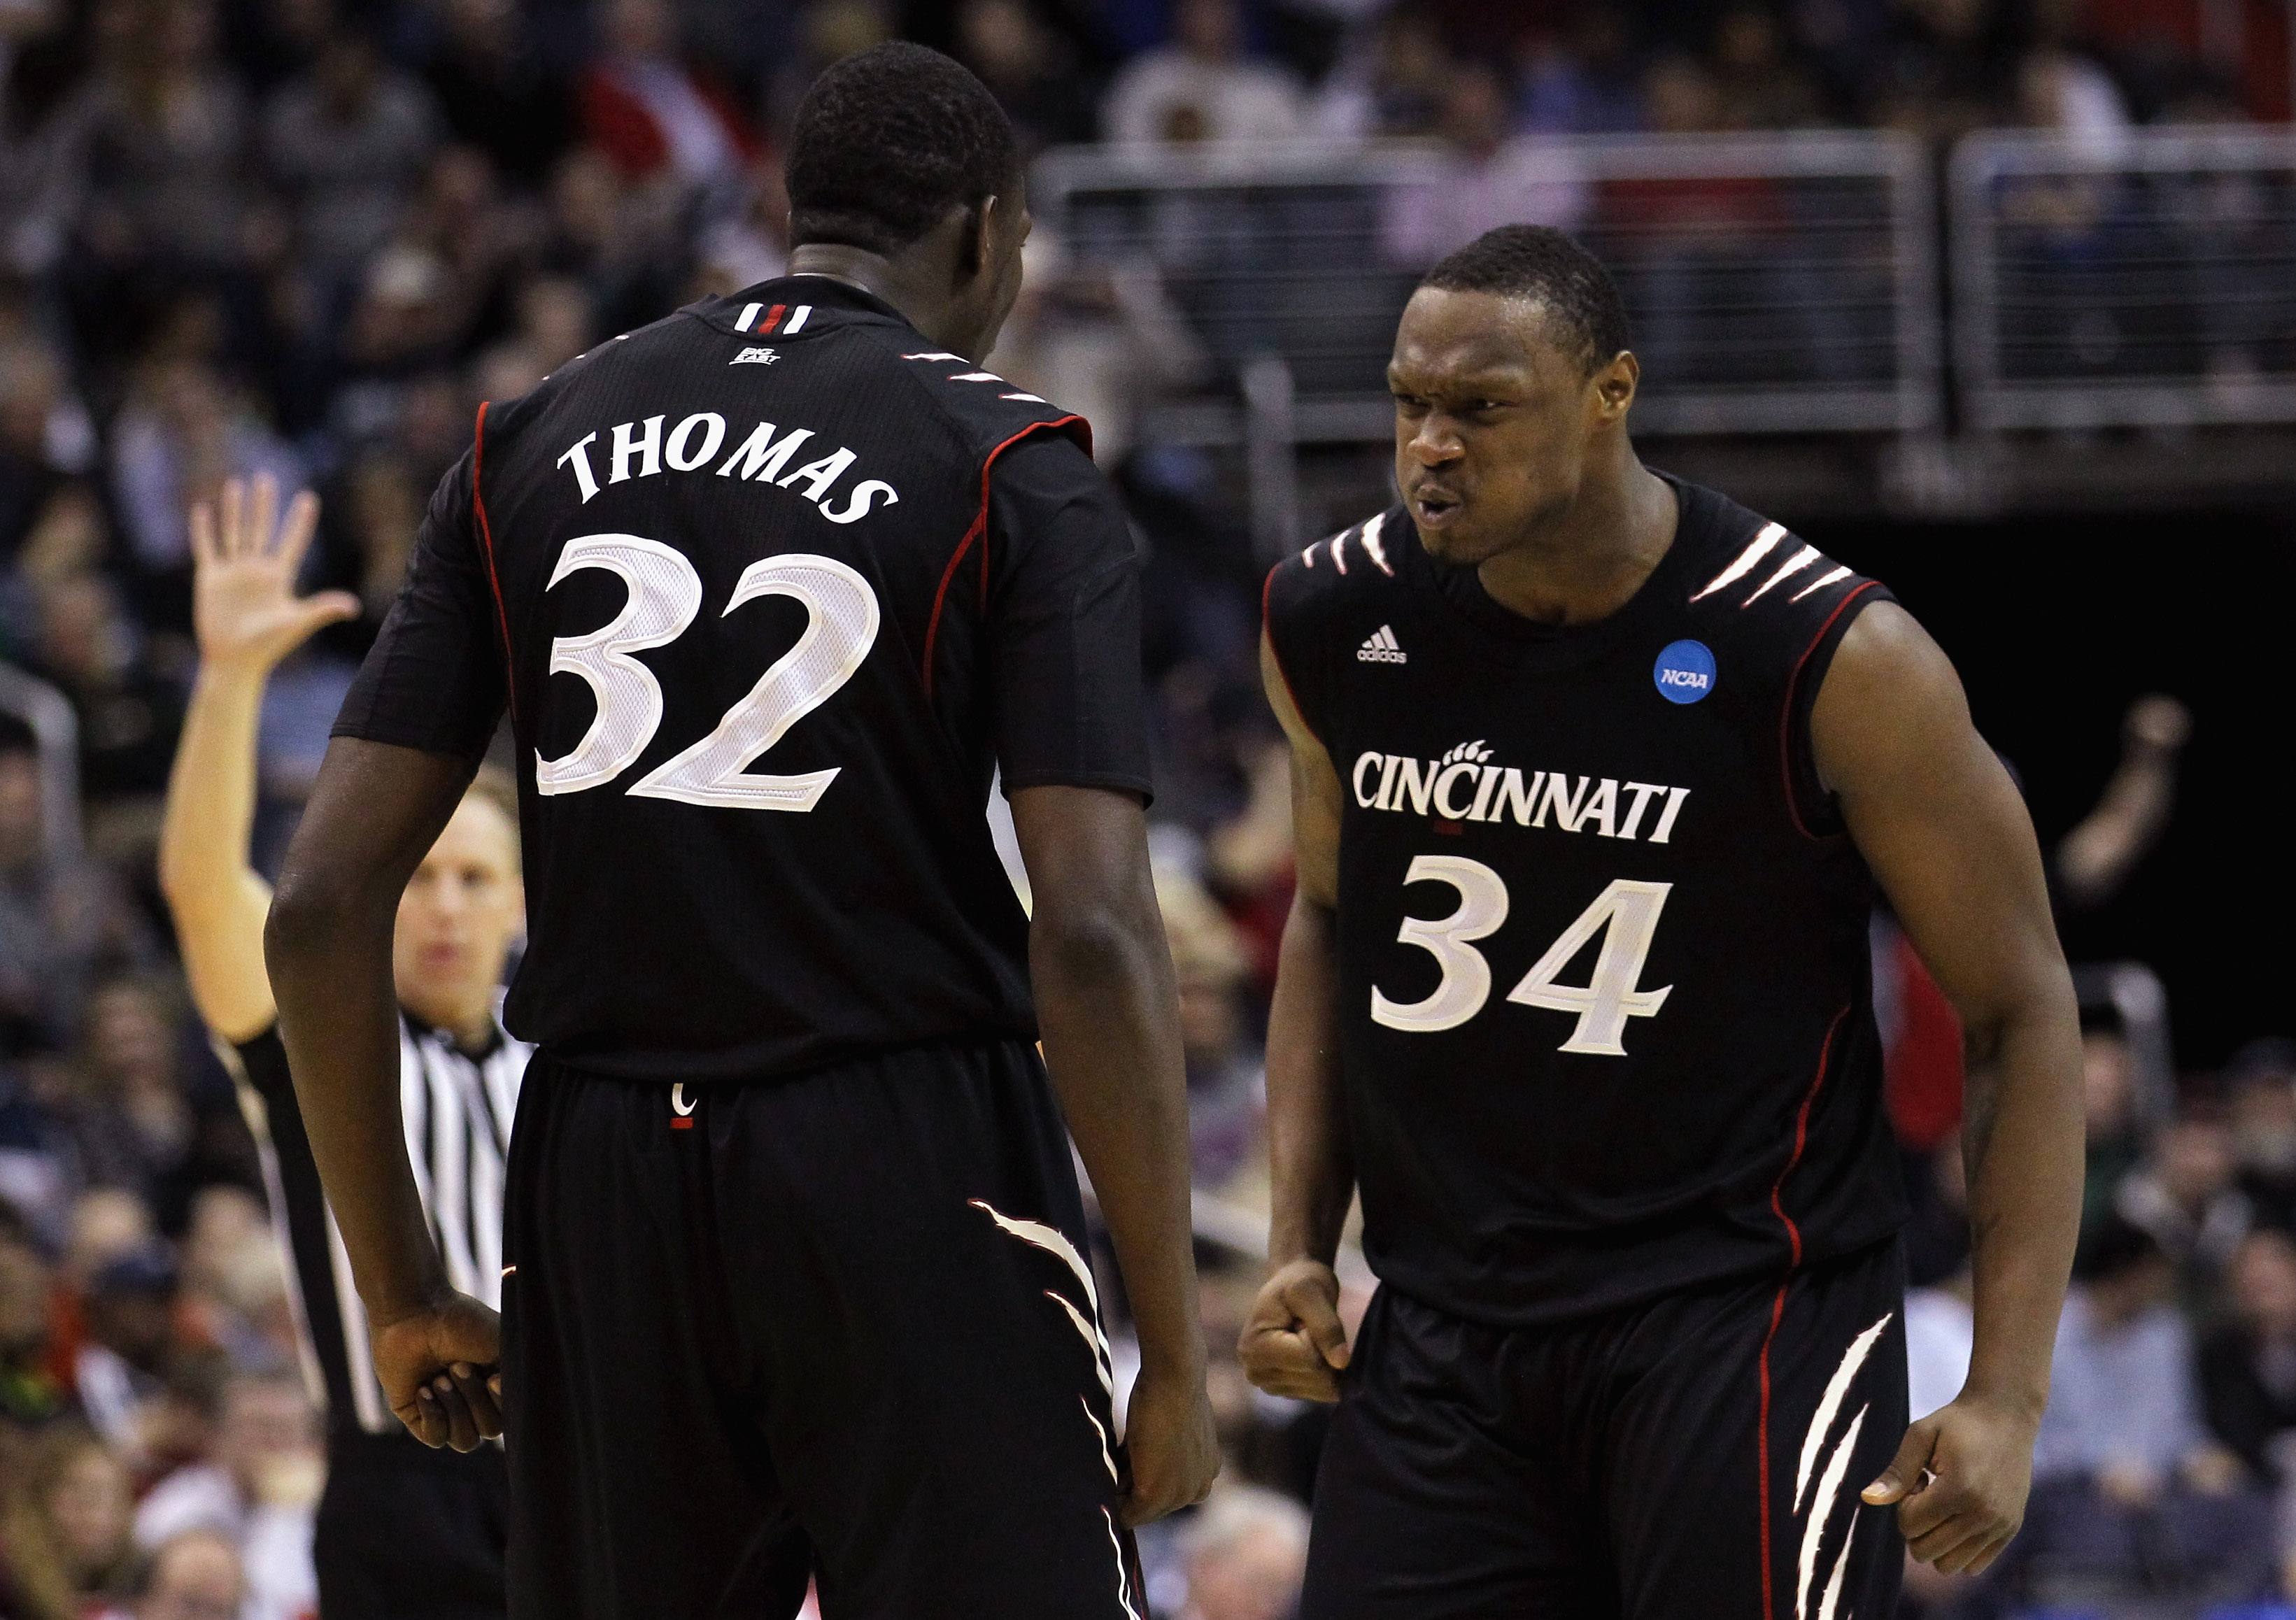 WASHINGTON - MARCH 19:  Ibrahima Thomas #32 of Cincinnati celebrates with teammate Yancy Gates #34 against Connecticut during the third round of the 2011 NCAA men's basketball tournament at Verizon Center on March 19, 2011 in Washington, DC.  (Photo by Ni